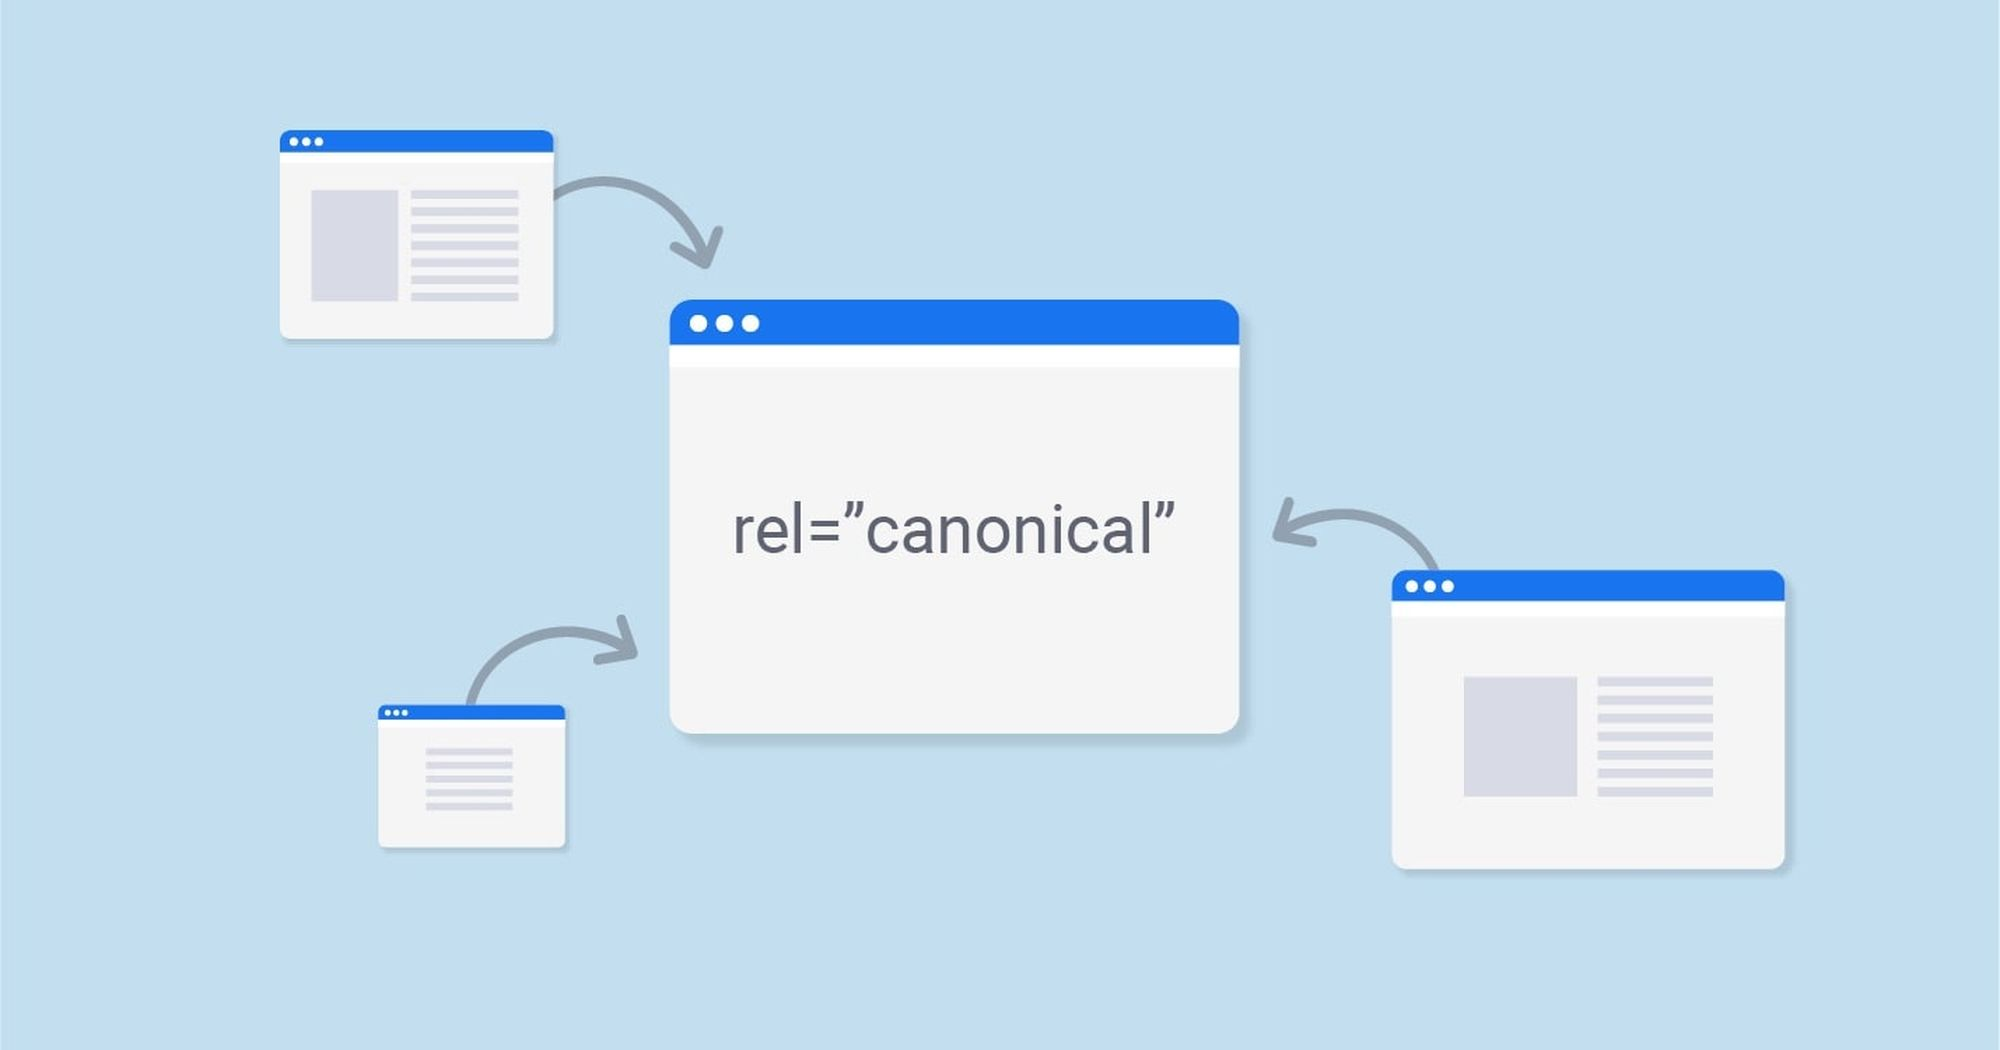 What Is a Canonical URL and How Is It Used in a SEO Strategy?